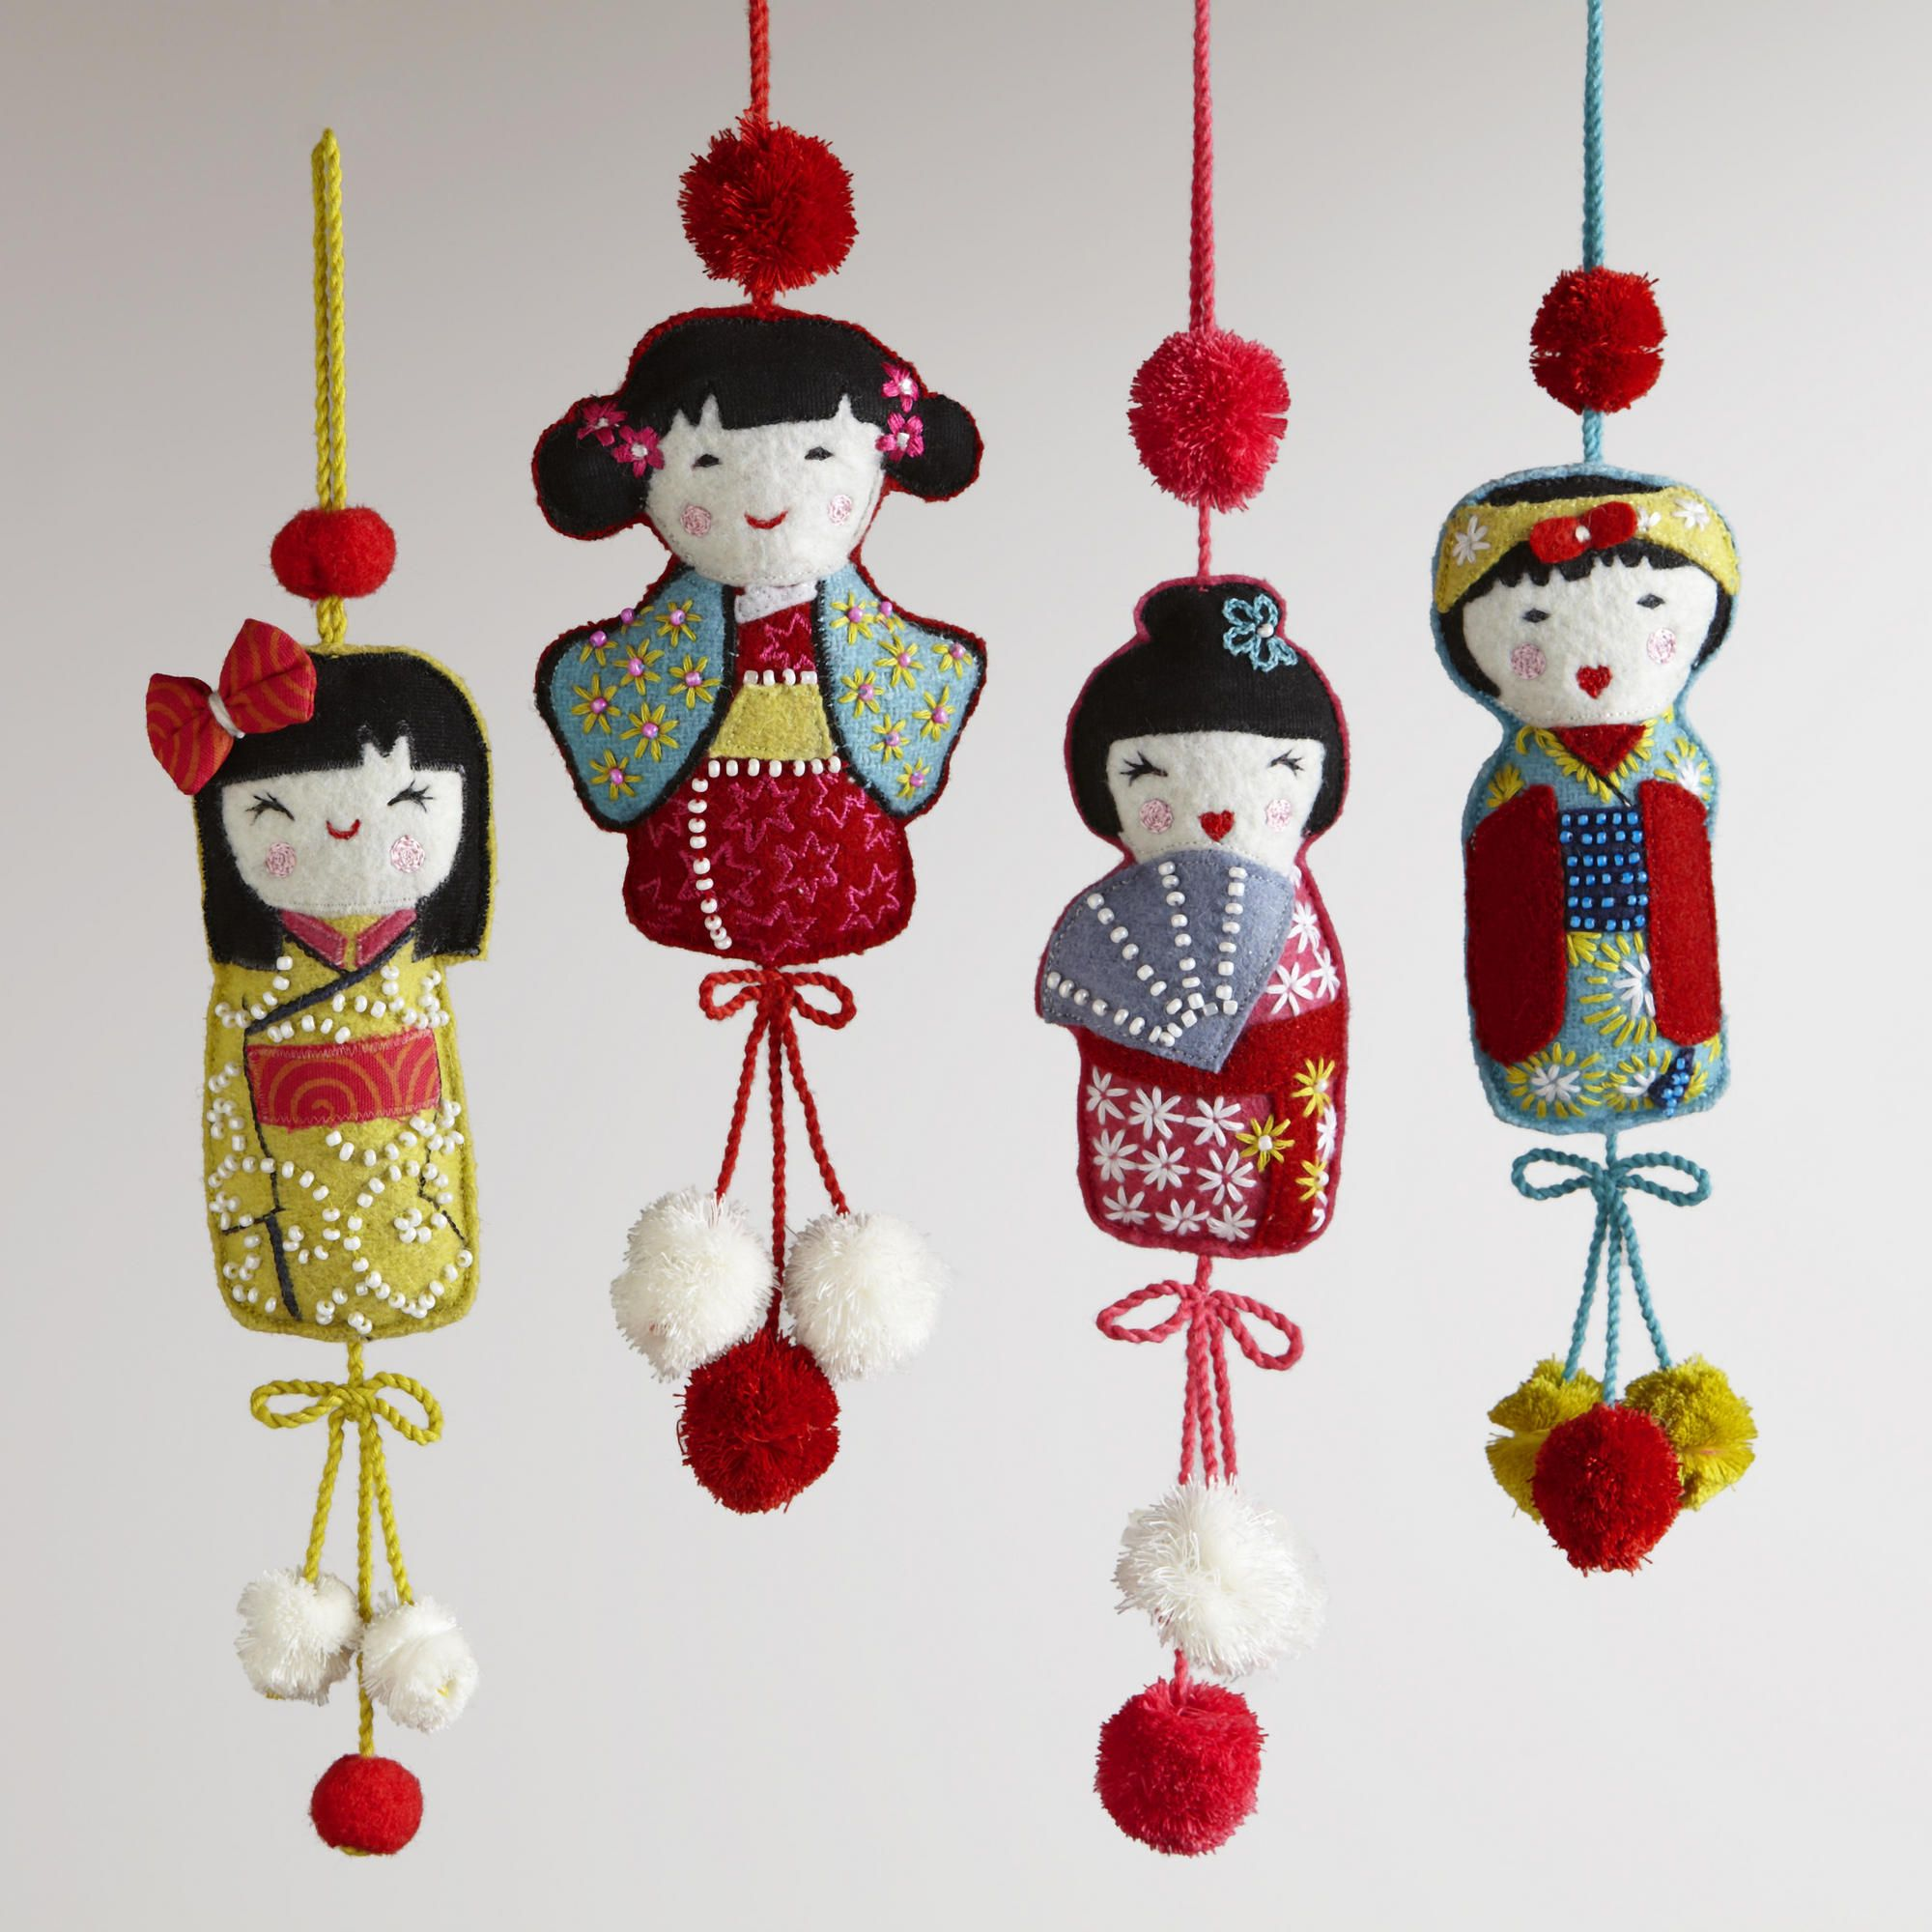 Set of 4-Embroidered Fabric Kokeshi Doll Ornaments, World